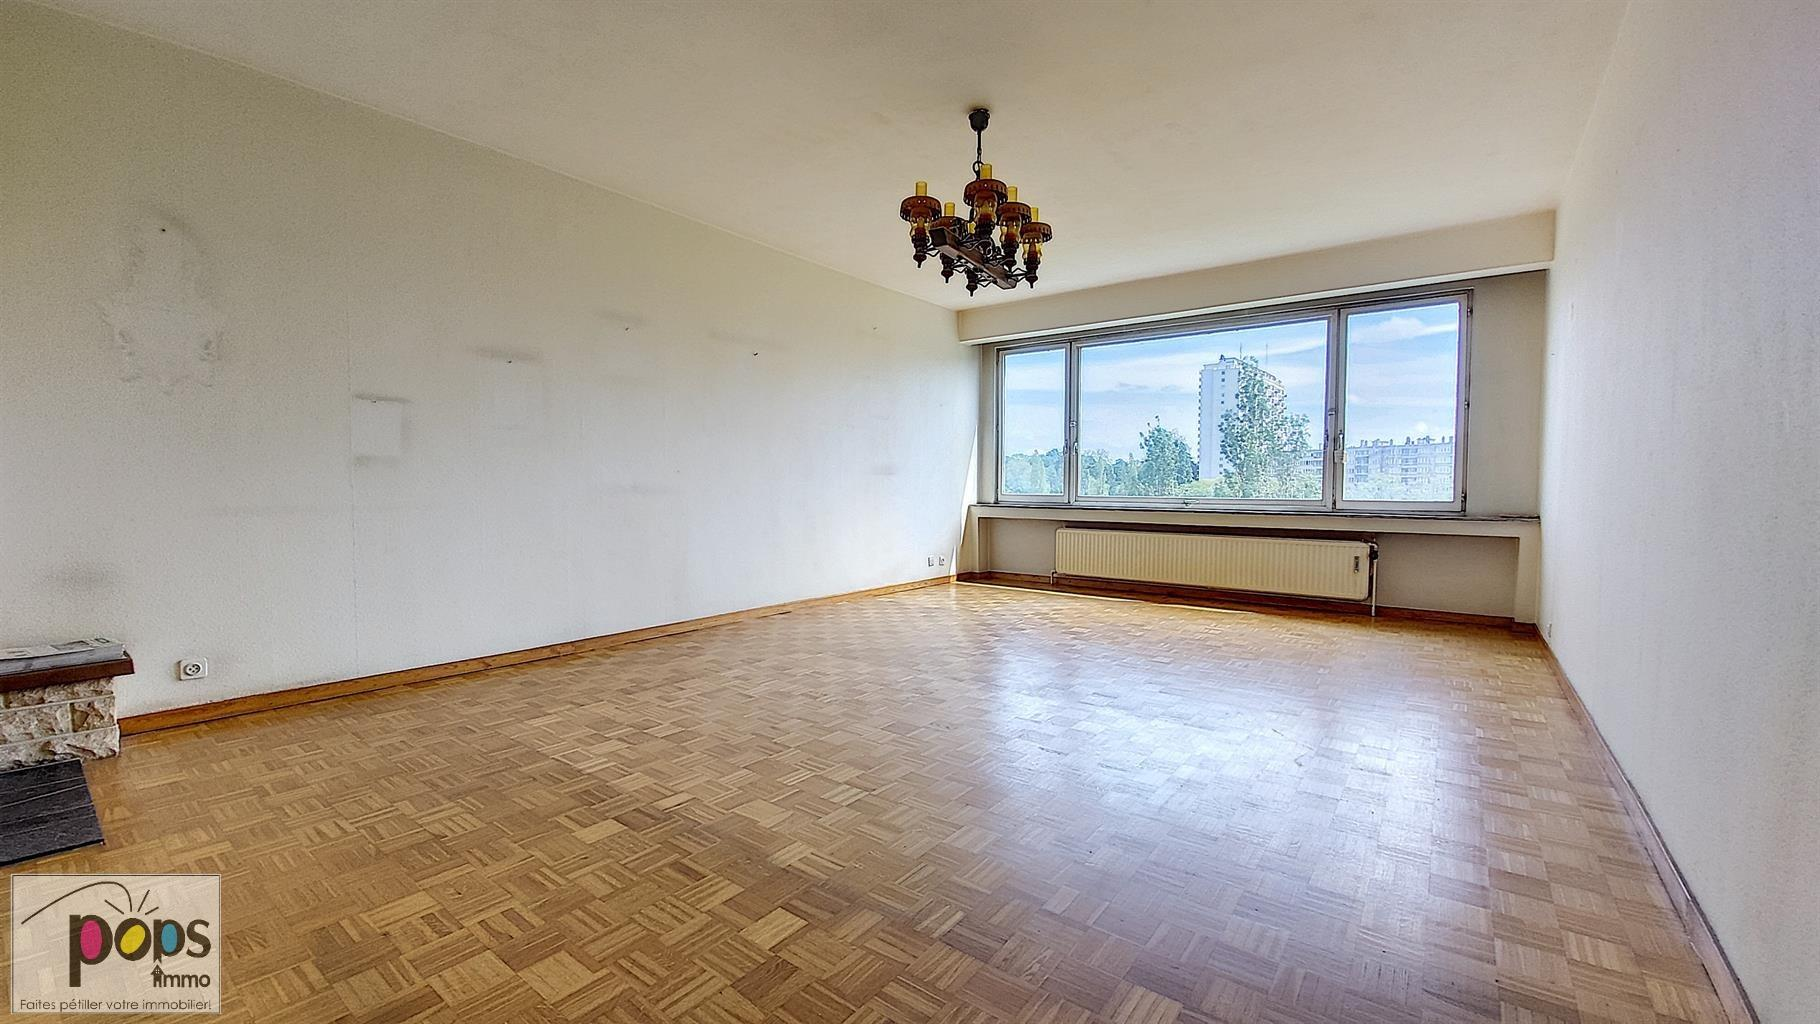 Appartement - Forest - #4496399-4